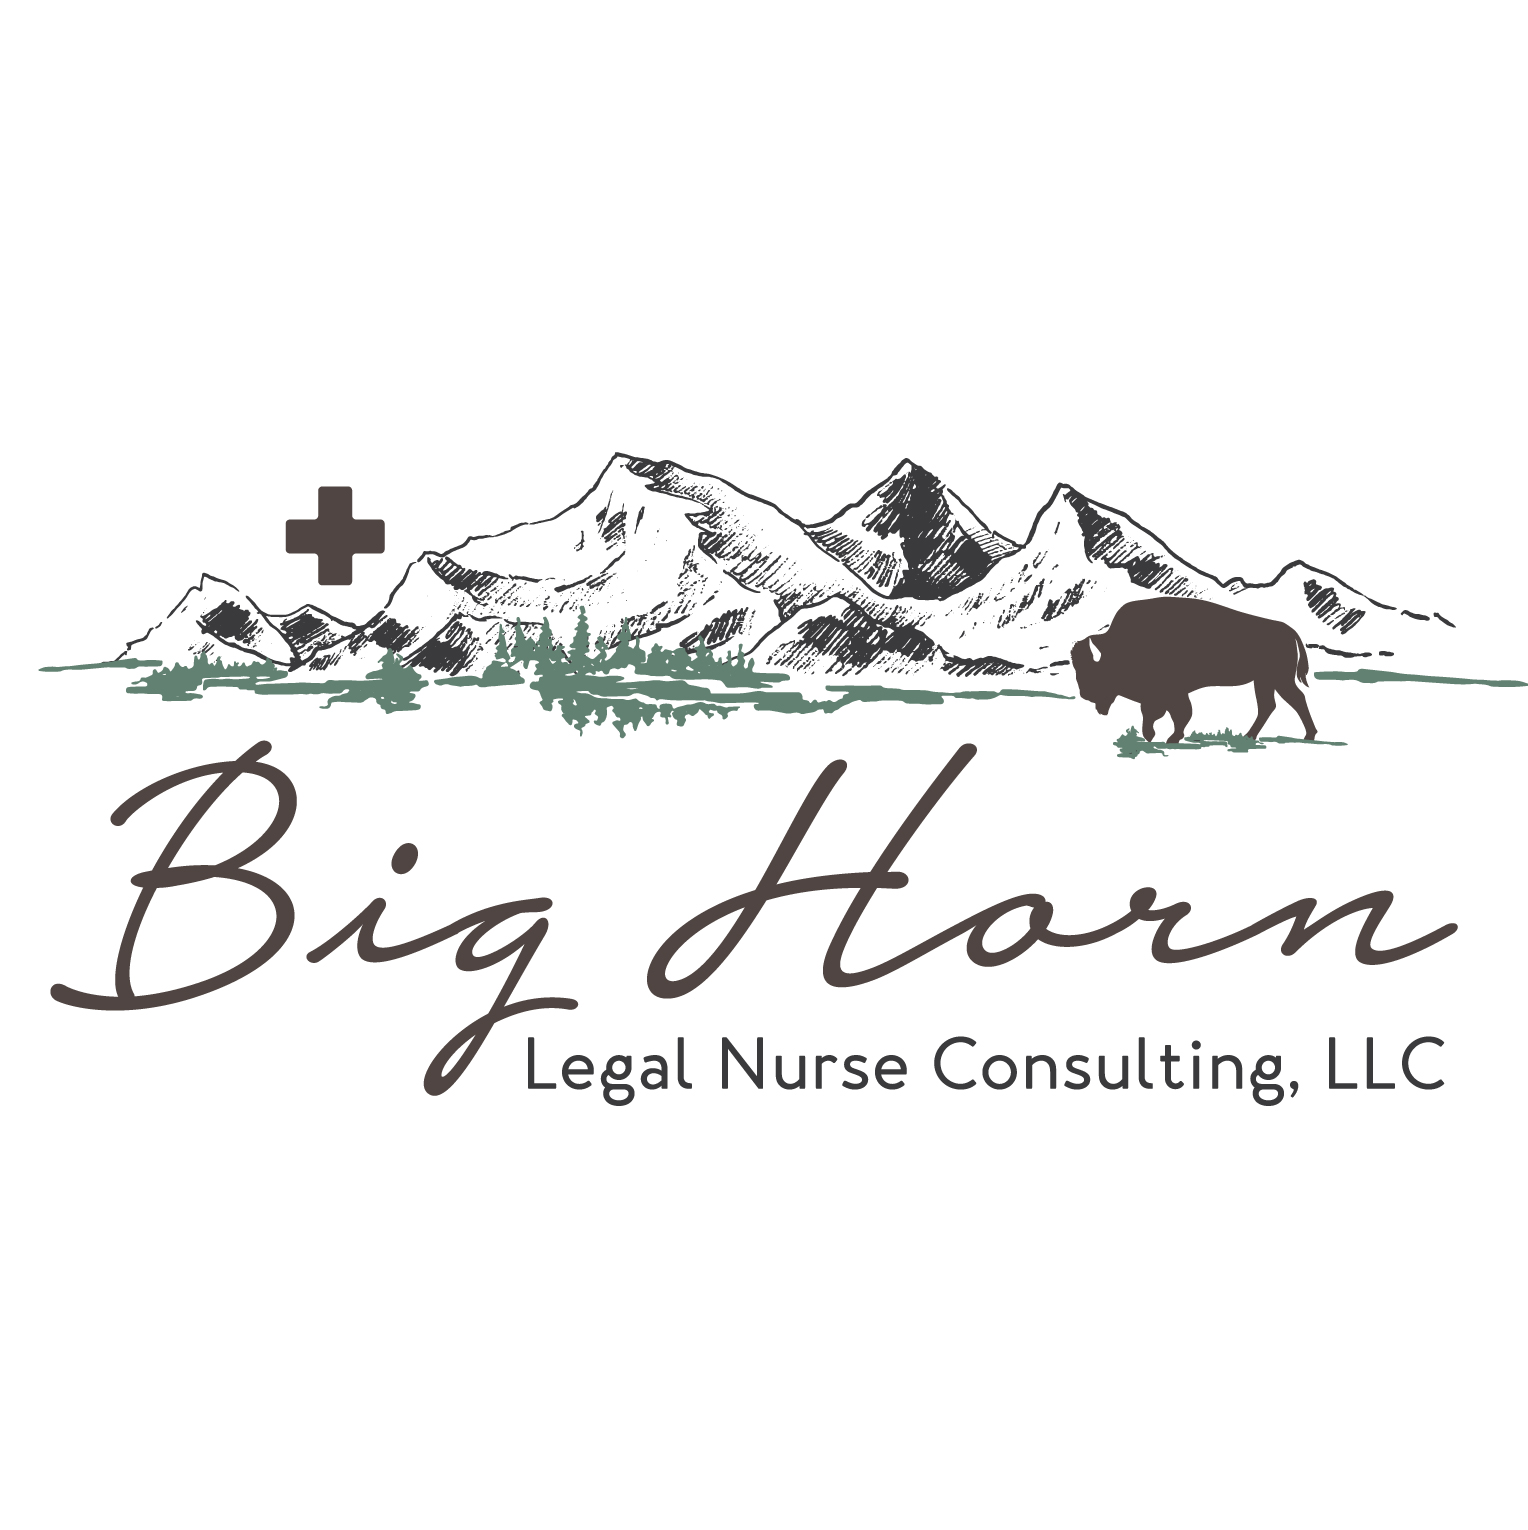 Big Horn Legal Nurse Consulting branding design